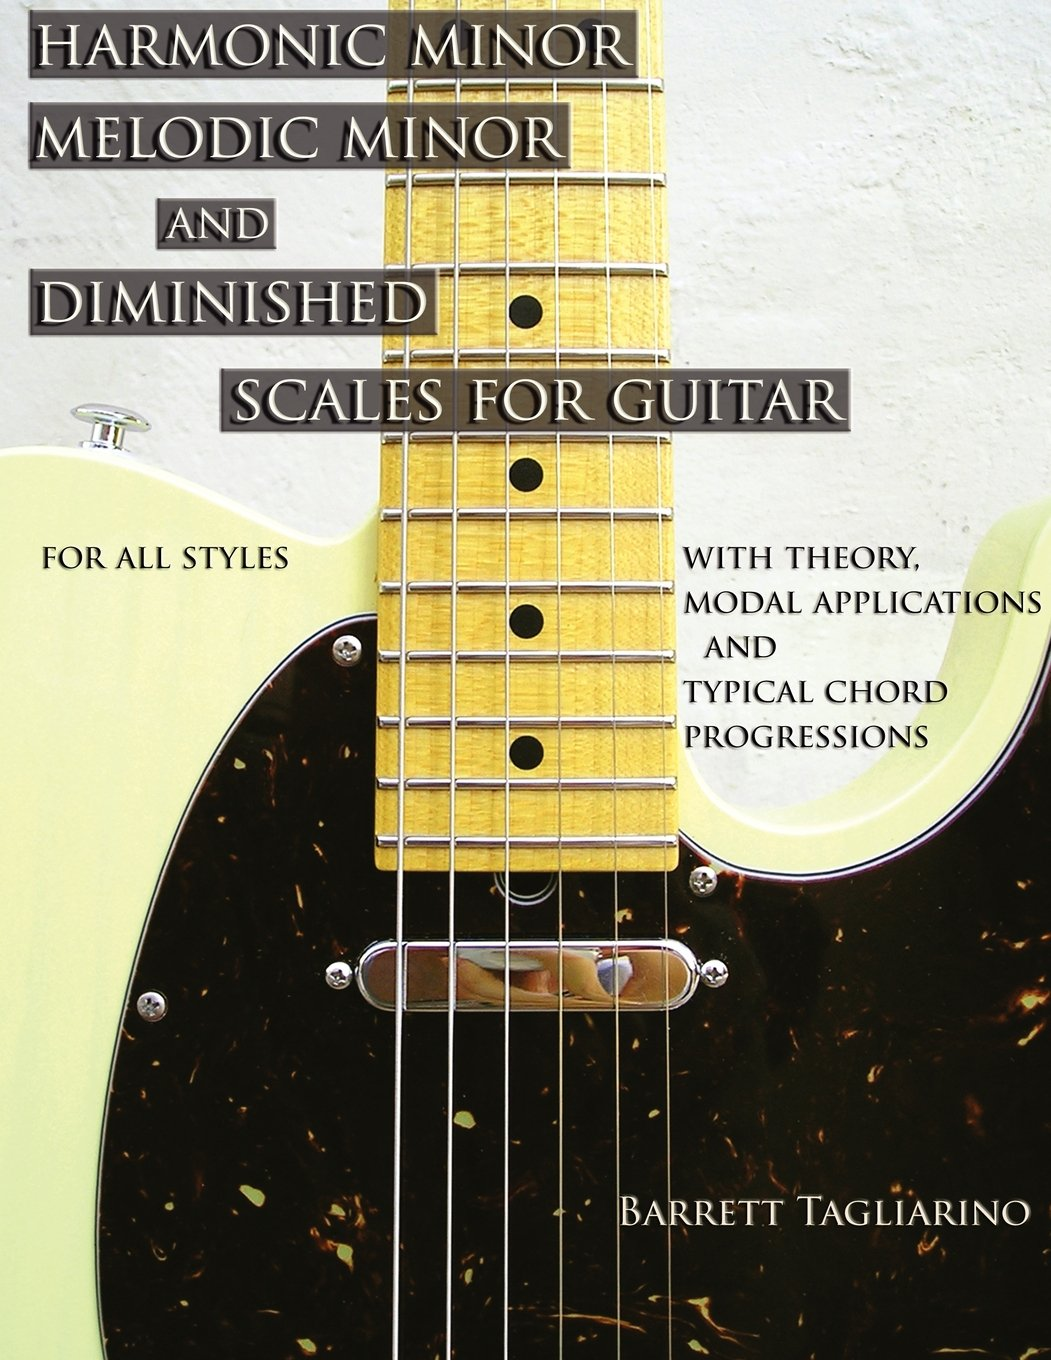 Harmonic minor, melodic minor, and diminished scales for guitar : for all styles, with theory, modal applications and typical chord progressions